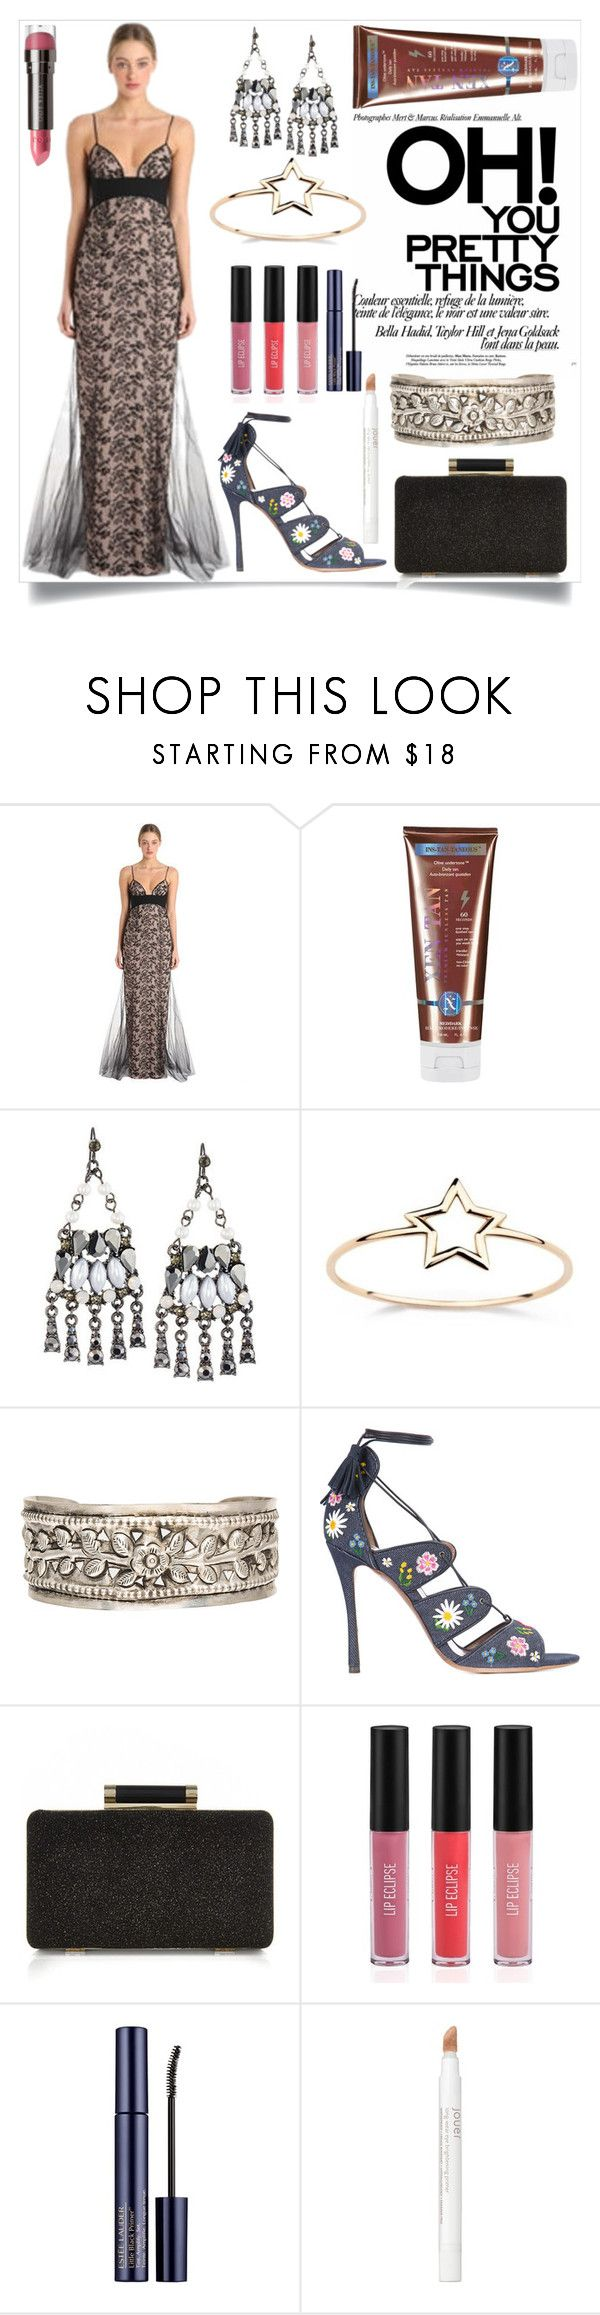 """Long Silk Tulle Gown"" by camry-brynn ❤ liked on Polyvore featuring La Perla, Xen-Tan, Lydell NYC, Aurélie Bidermann, Vanessa Mooney, Tabitha Simmons, Diane Von Furstenberg, Sigma, Jouer and LORAC"